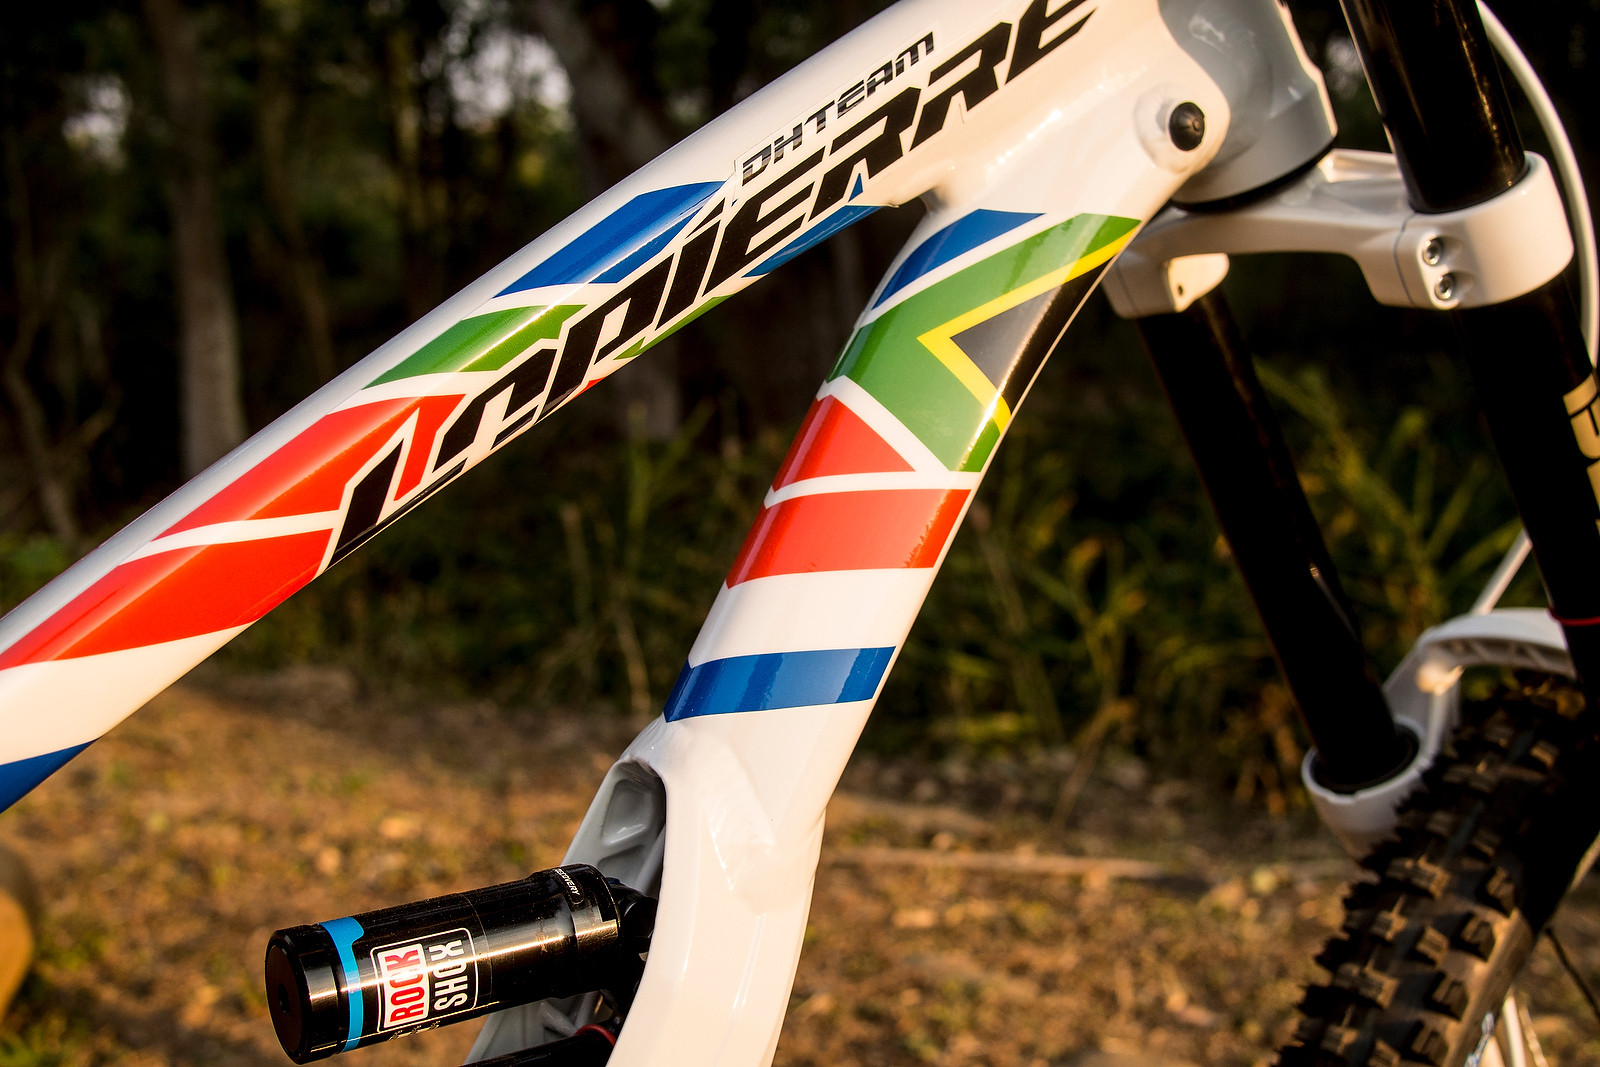 Emmeline Ragot's World Champs Lapierre Custom Paint - WORLD CHAMPS BIKE - Emmeline Ragot's Lapierre DH 720 - Mountain Biking Pictures - Vital MTB